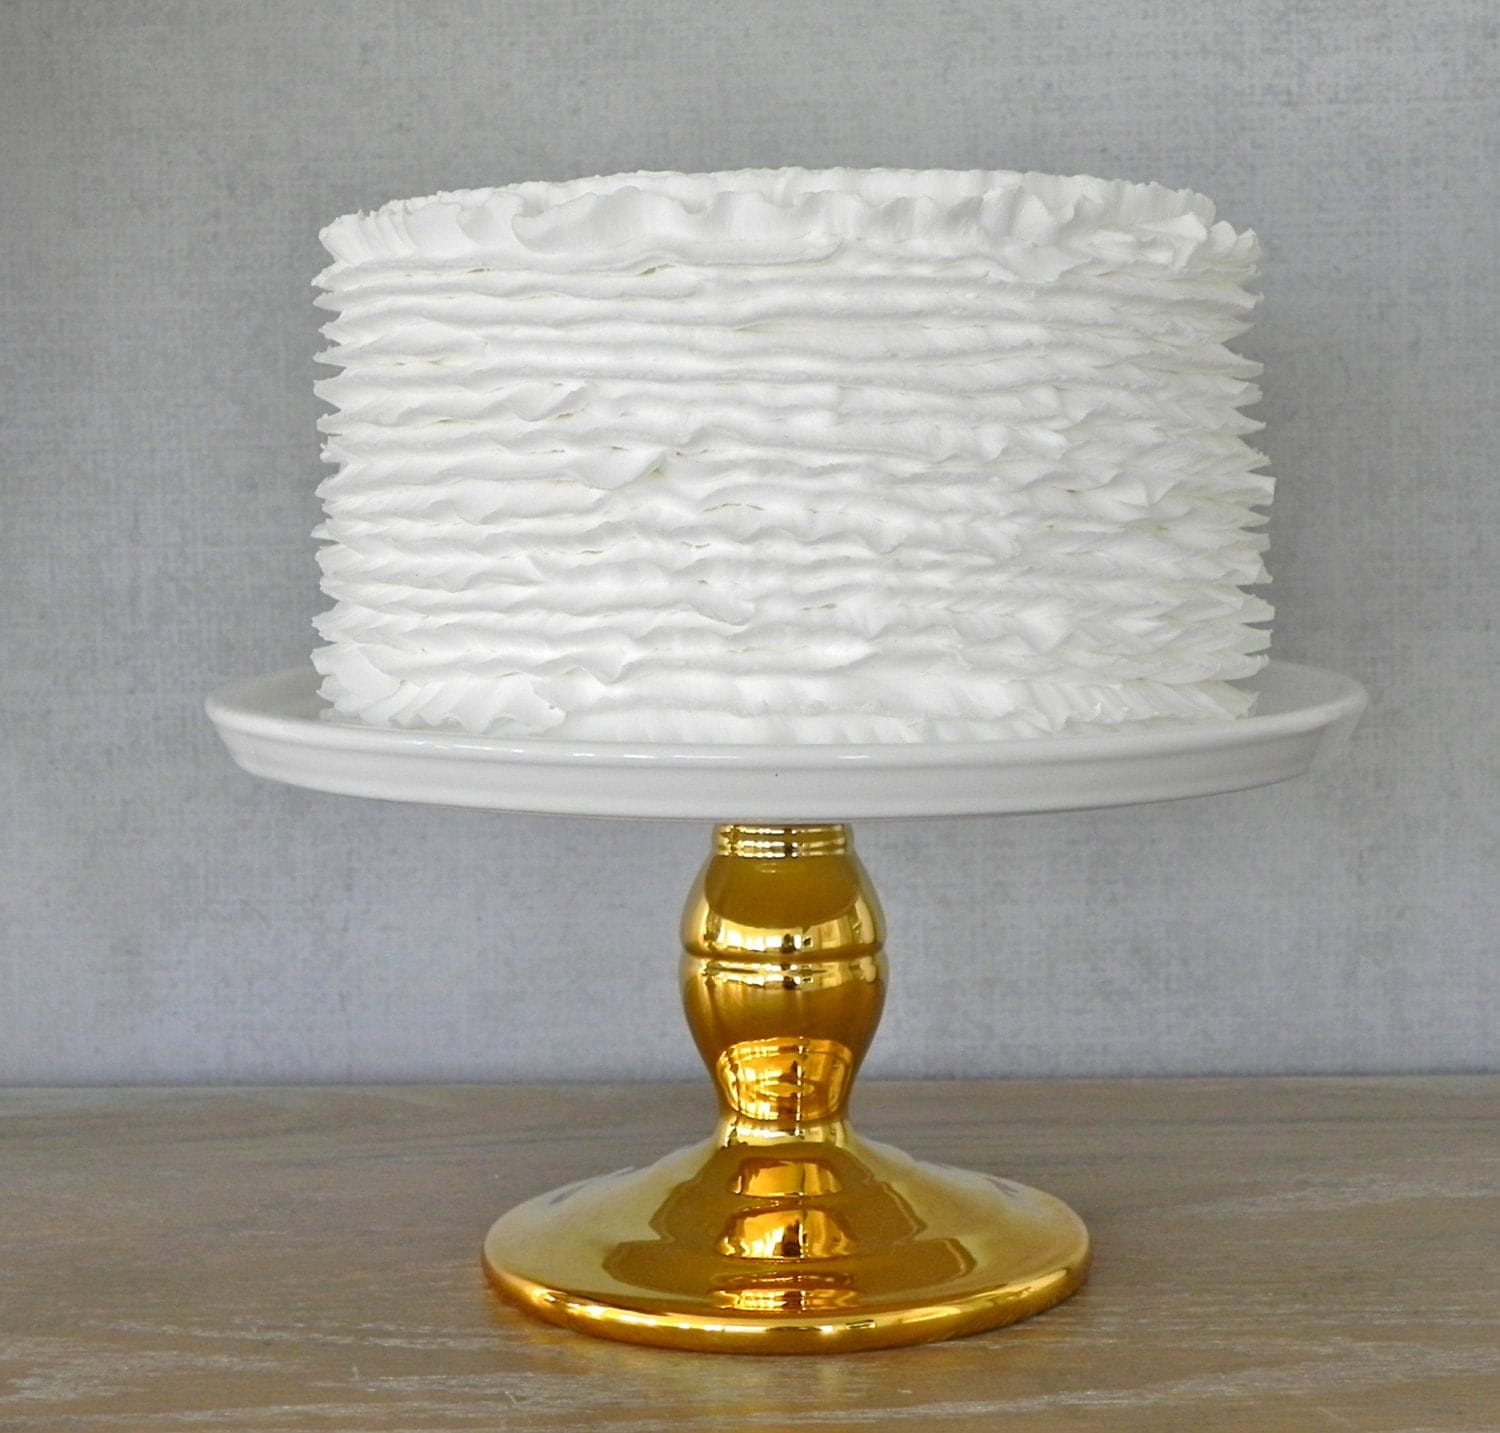 tall gold wedding cake stand gold cake stand 10 wedding cake stand cupcake stand gold 20738